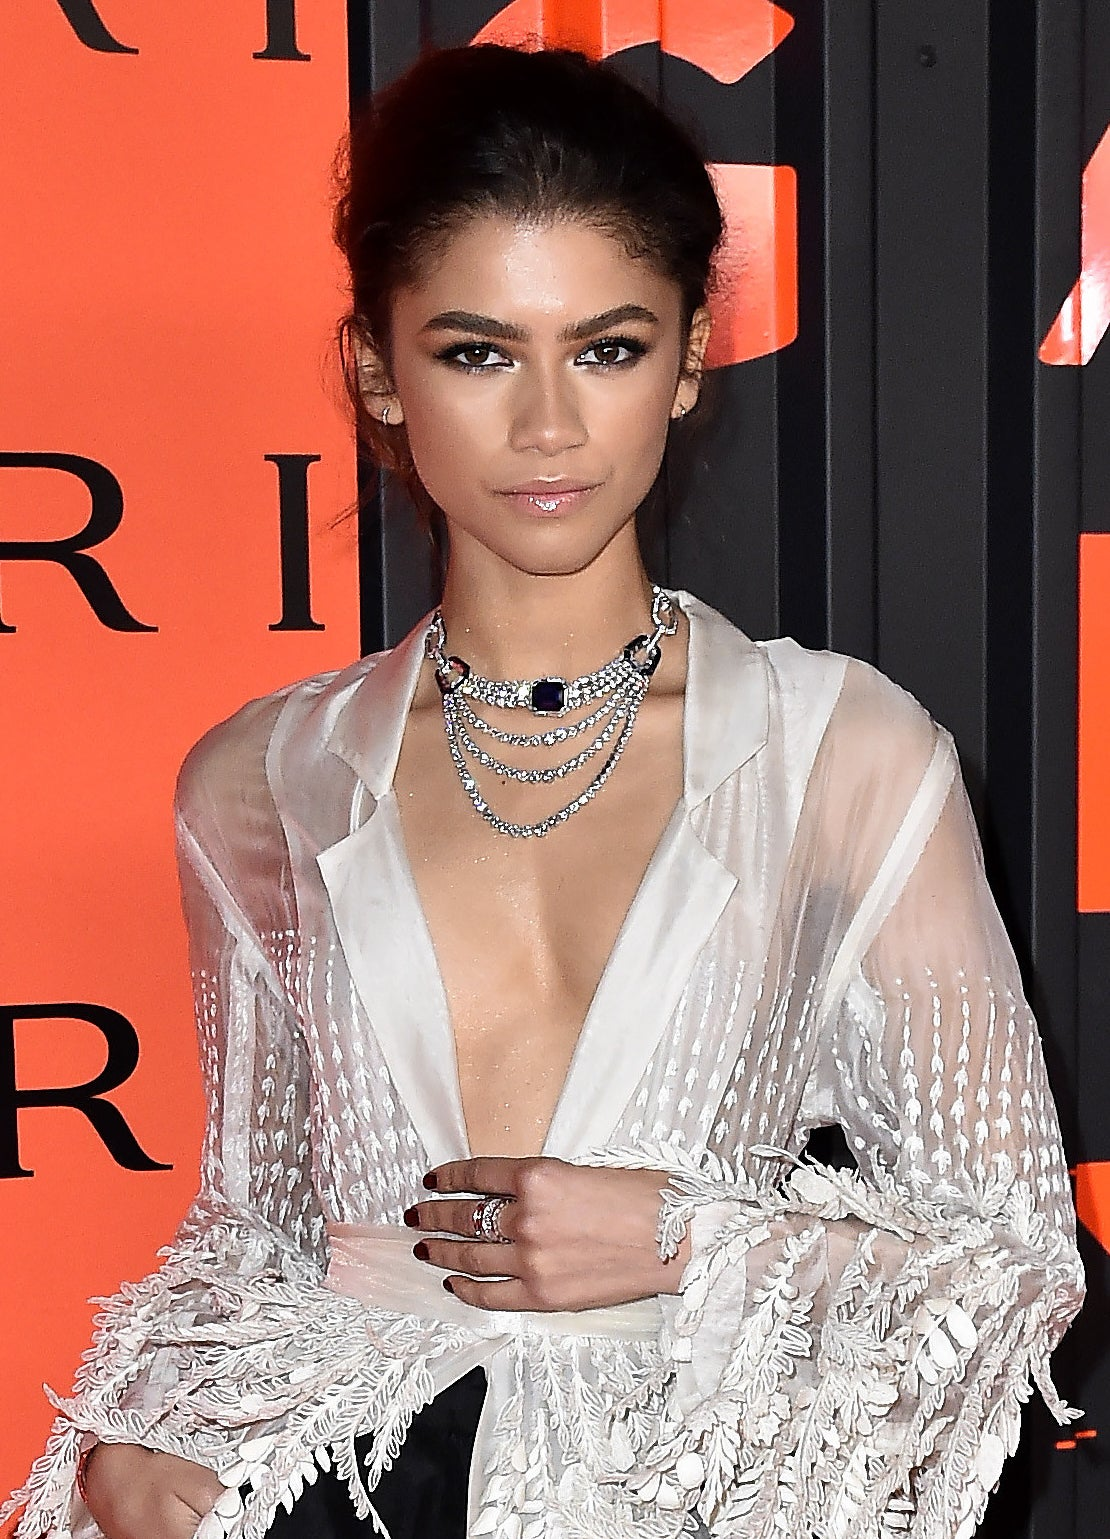 Zendaya at a BLVGRI event, wearing a V-neck blouse and her hair up